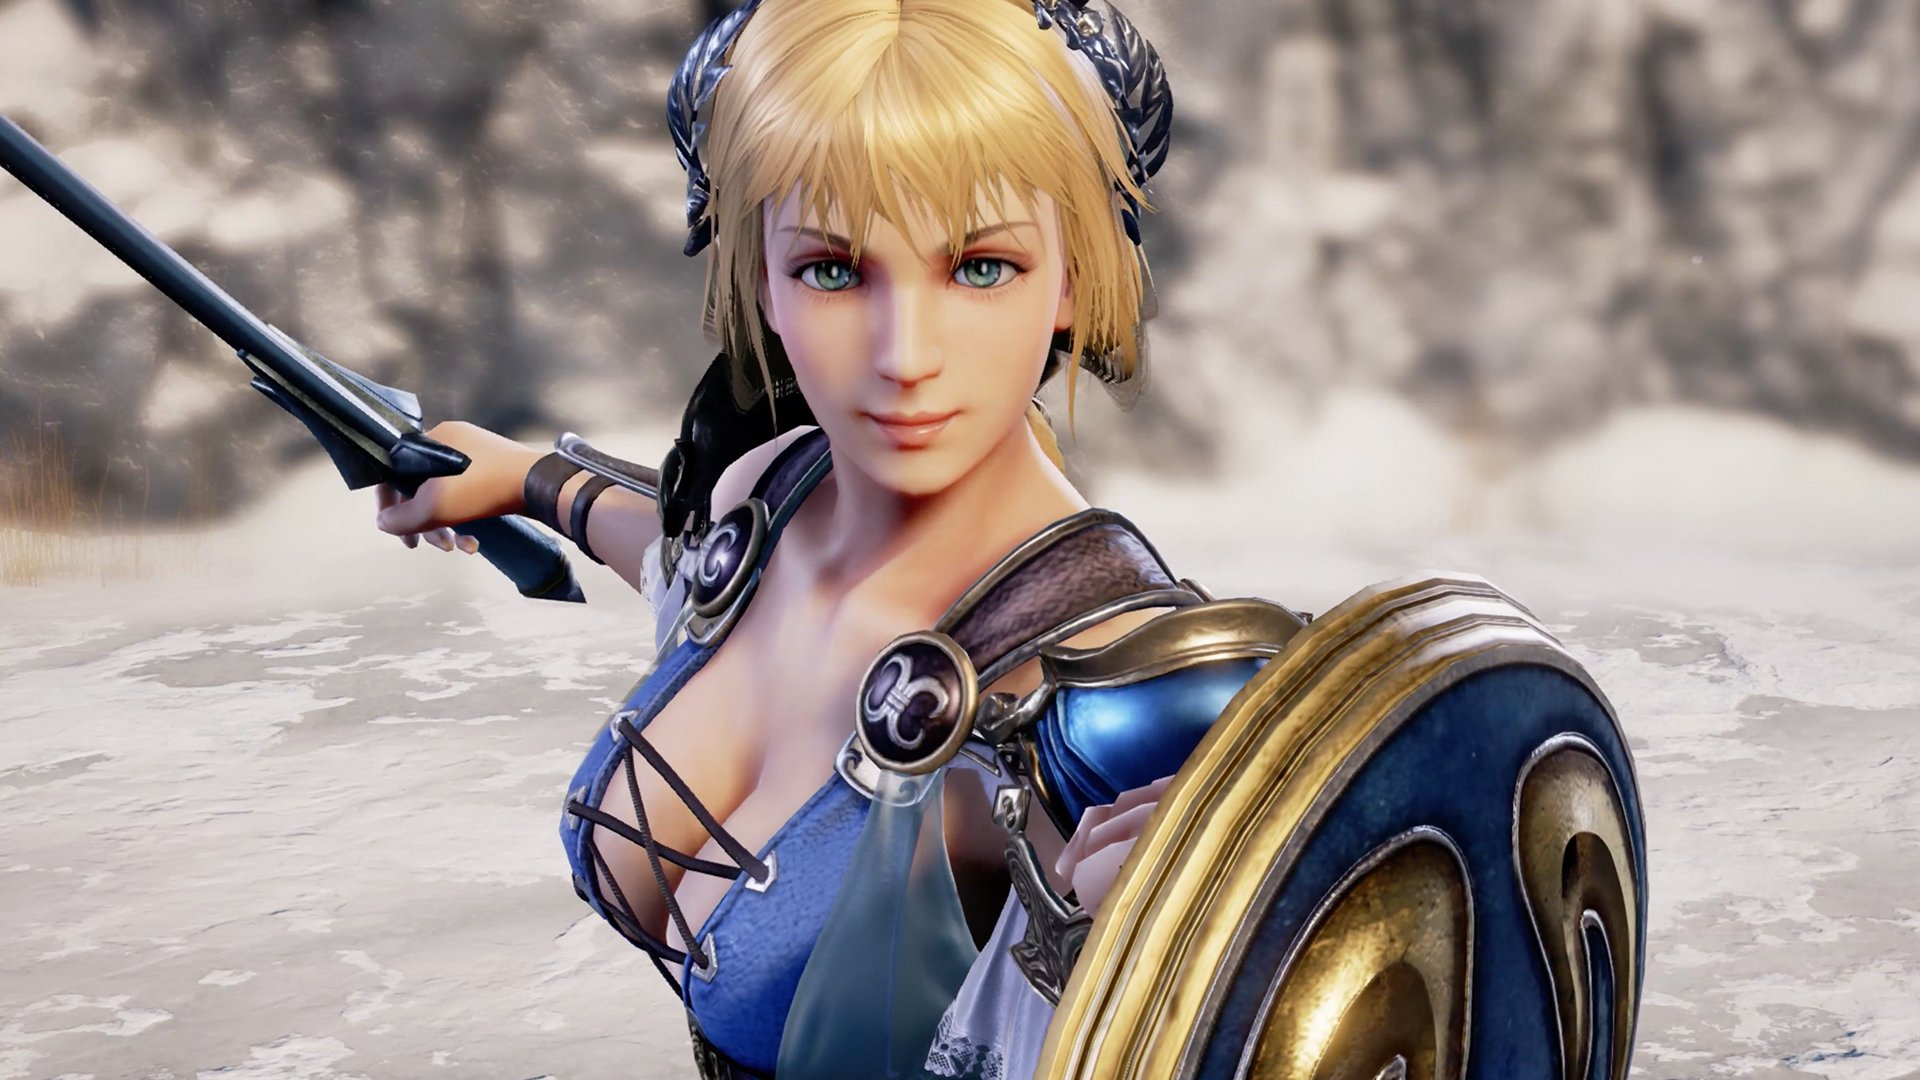 The tale of souls and swords continues as SOULCALIBUR VI comes to PS4 in 2018. https://t.co/vBH1BkWyrt